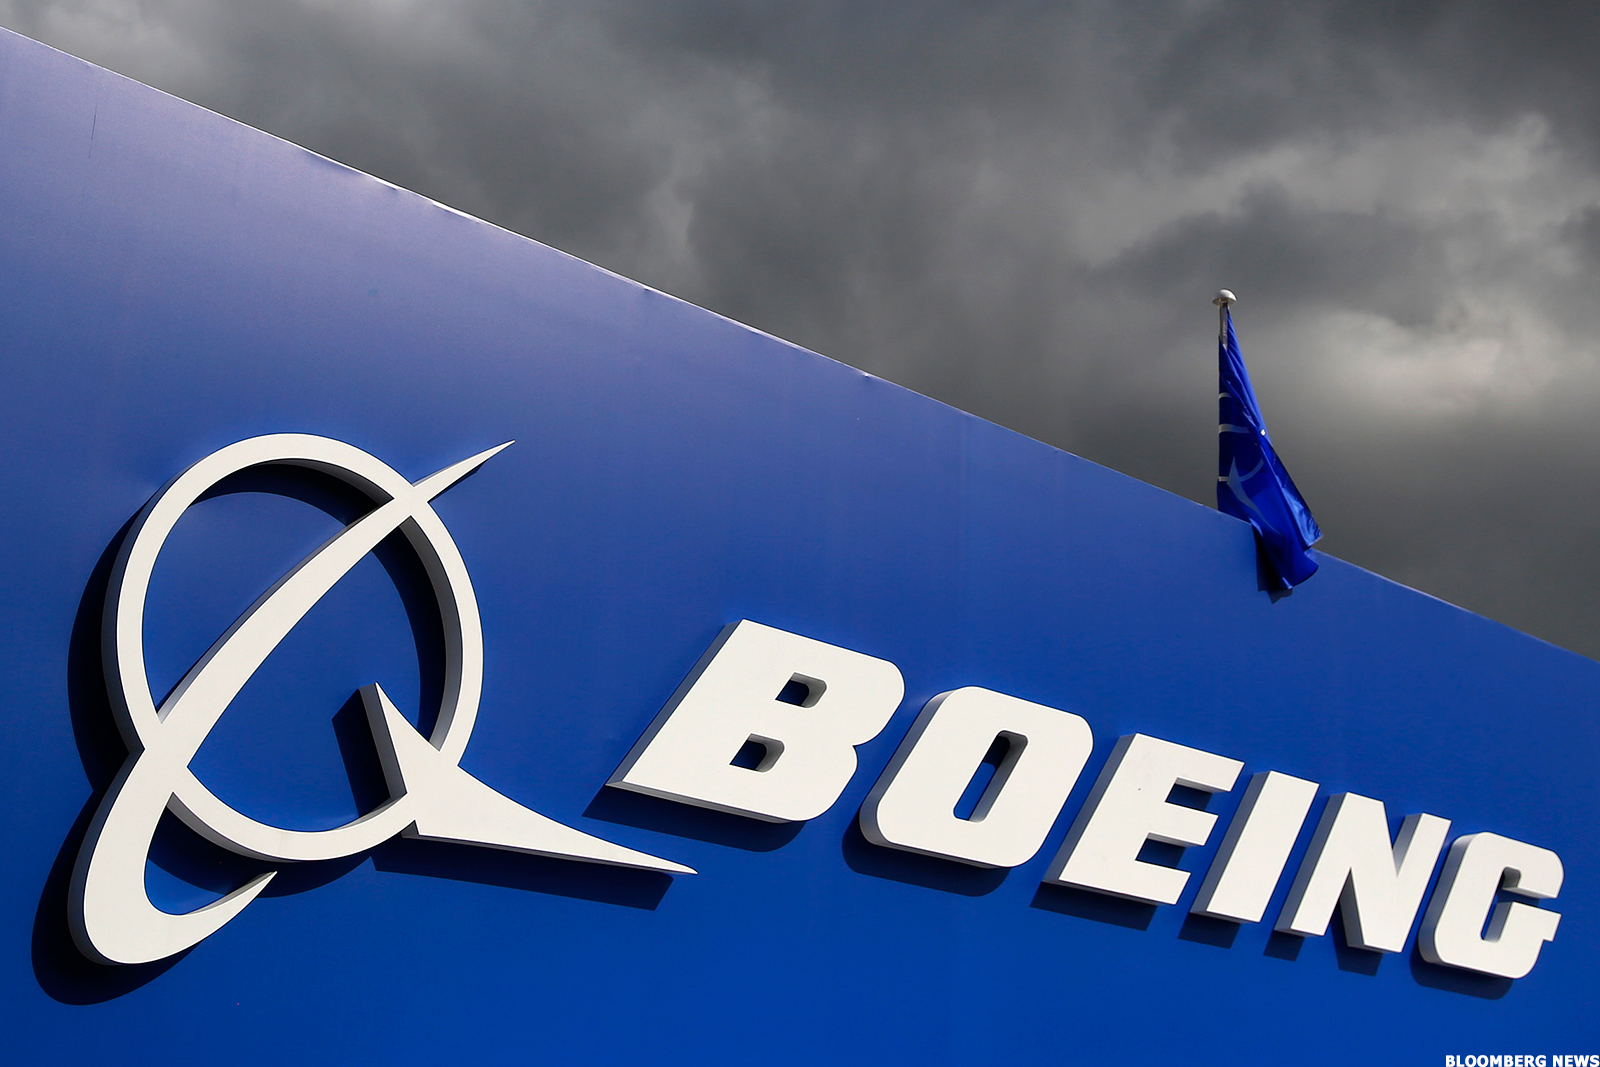 Will Boeing (BA) Stock Rally on Iran Deal?